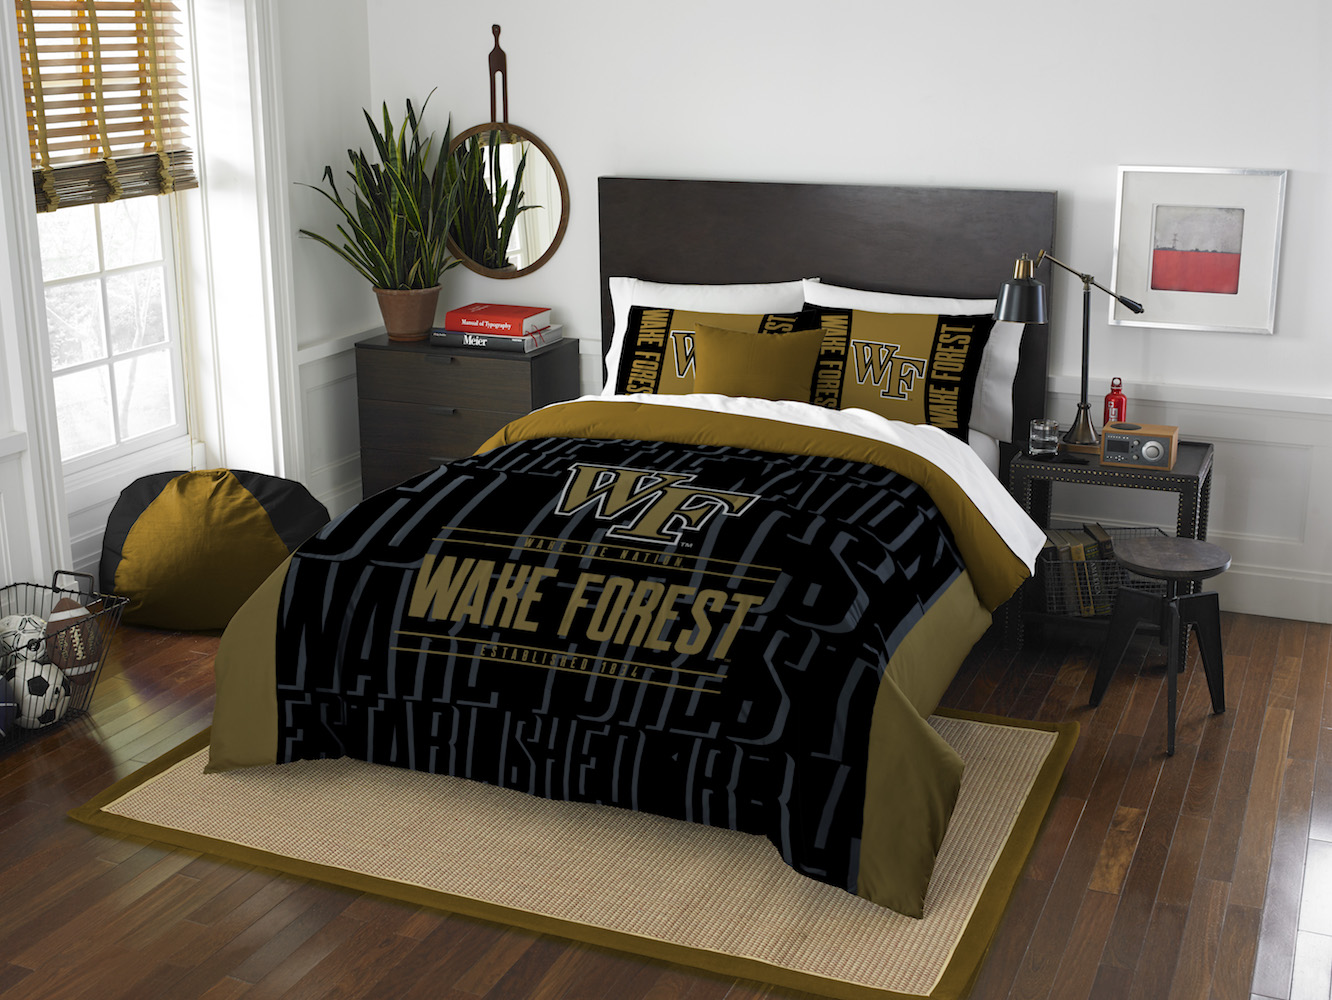 Wake Forest Demon Deacons QUEEN/FULL size Comforter and 2 Shams